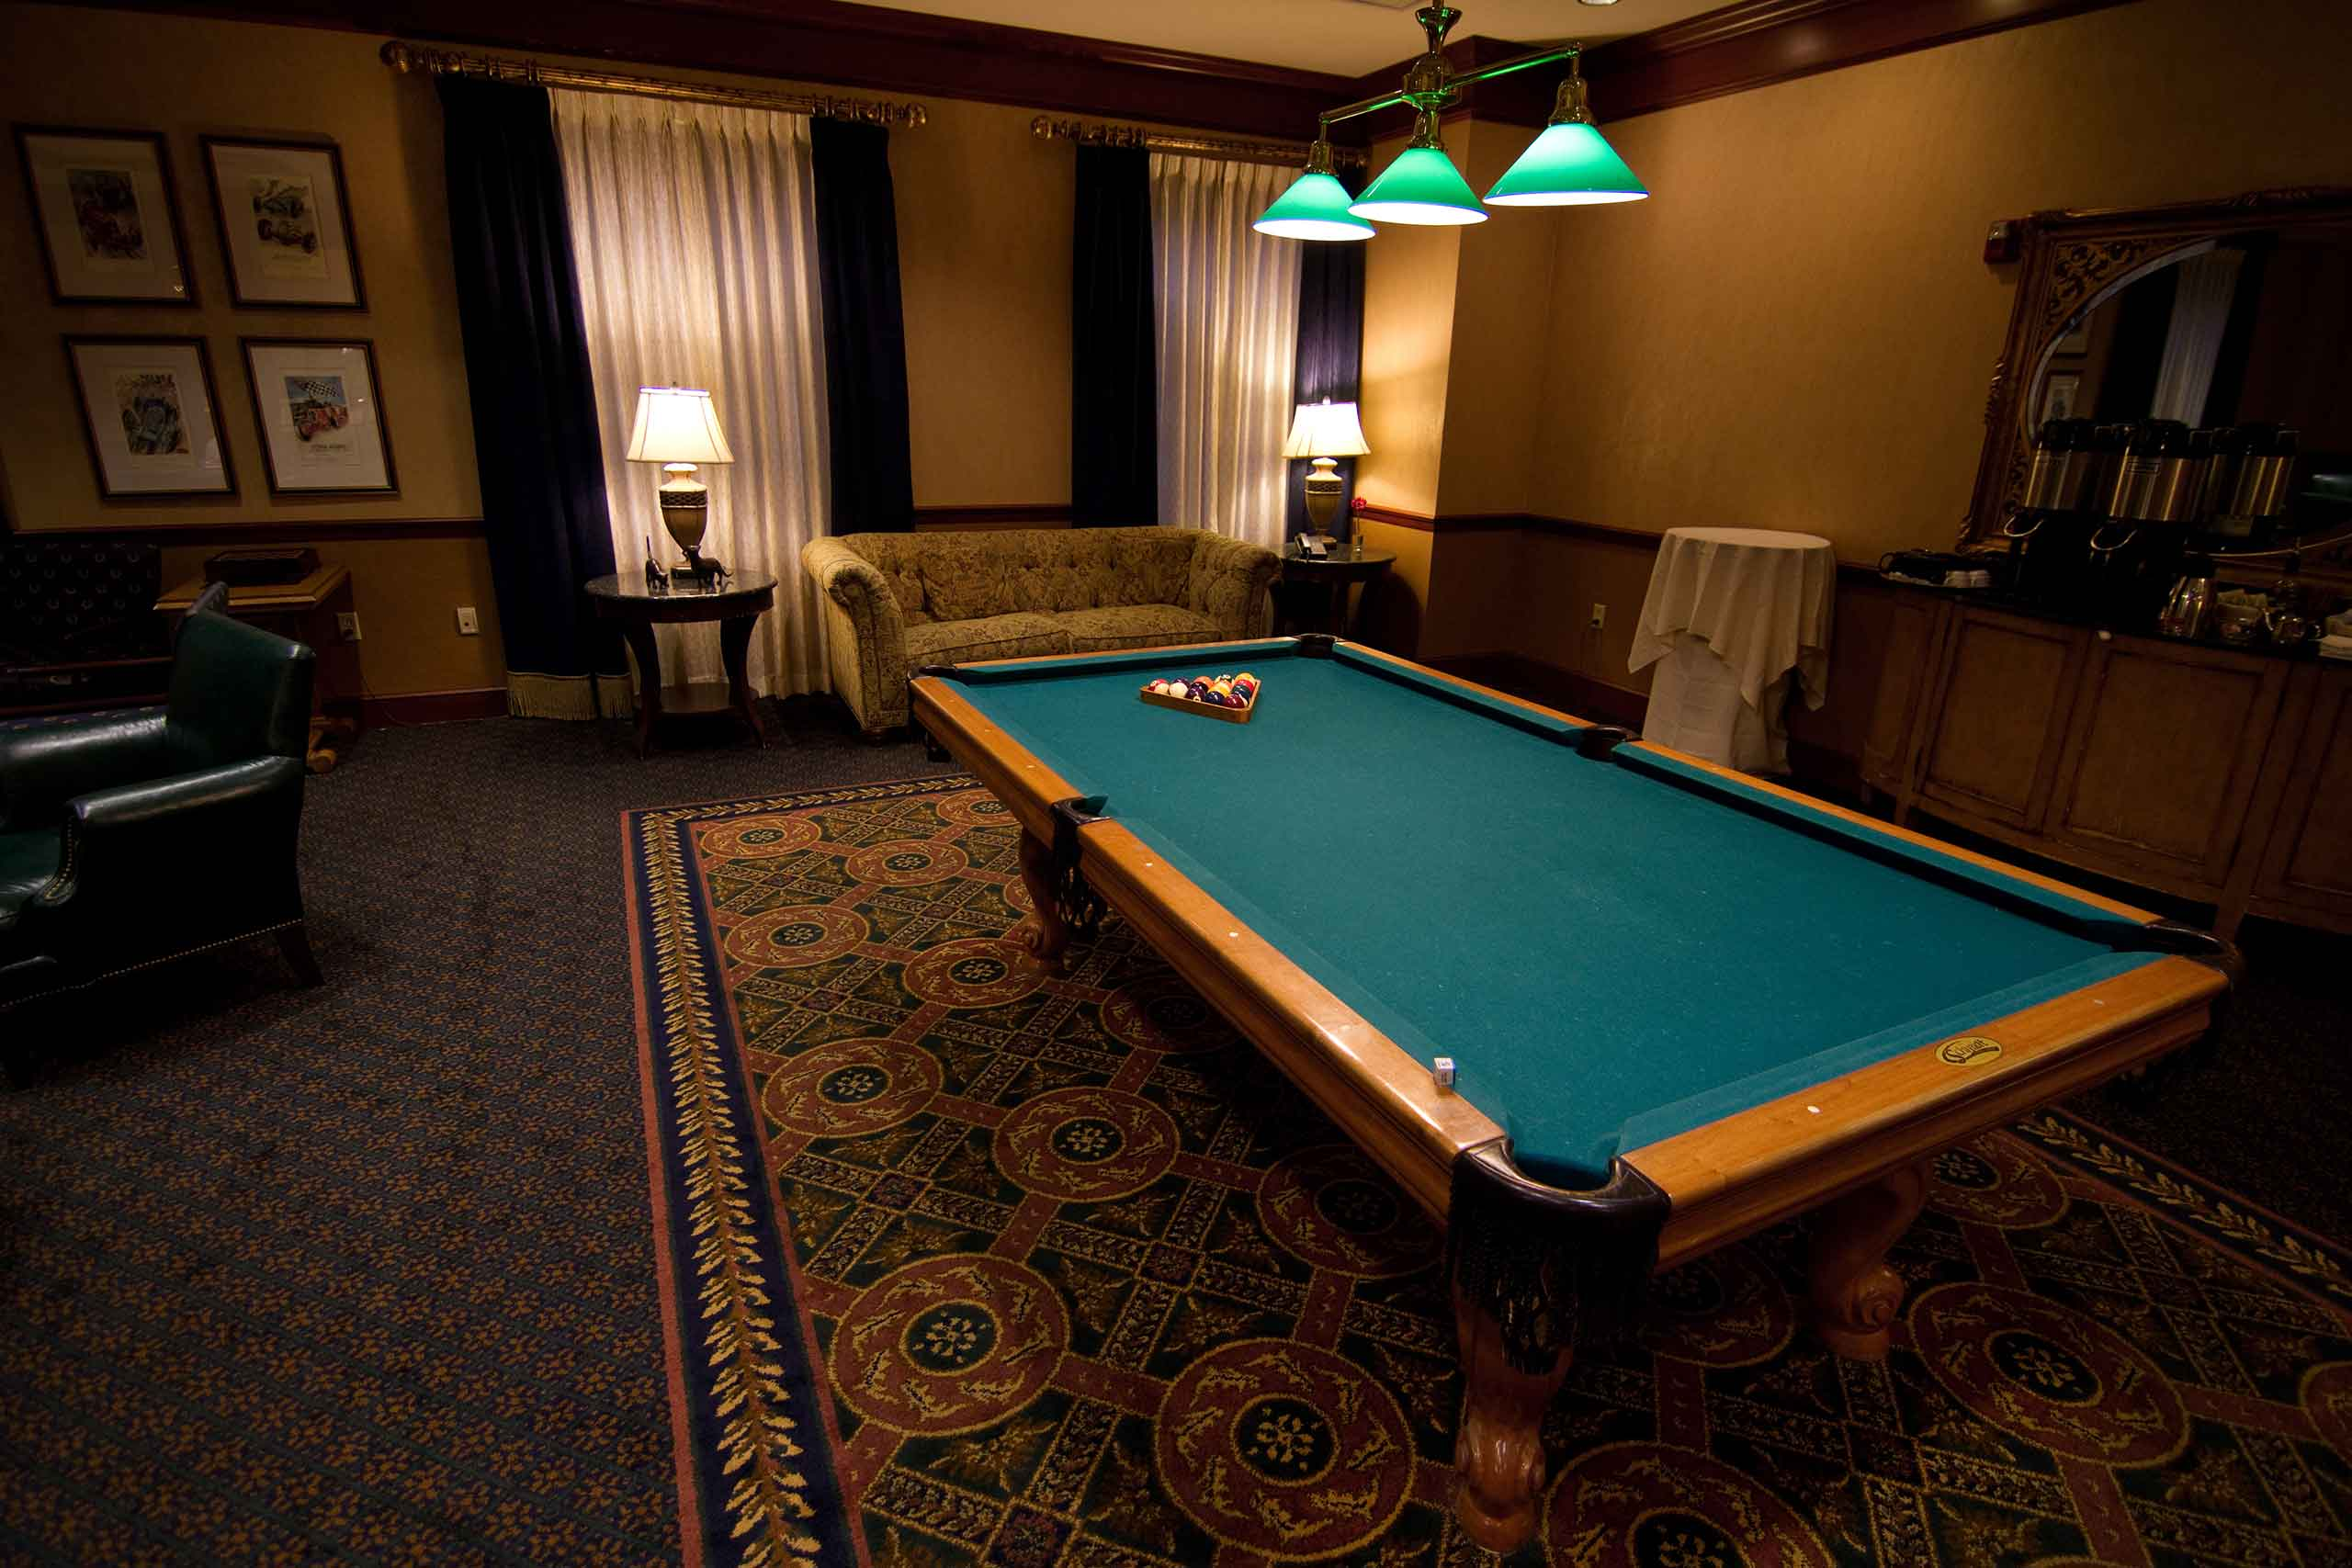 The-Hallmark-of-Creve-Coeur-Pool-Table